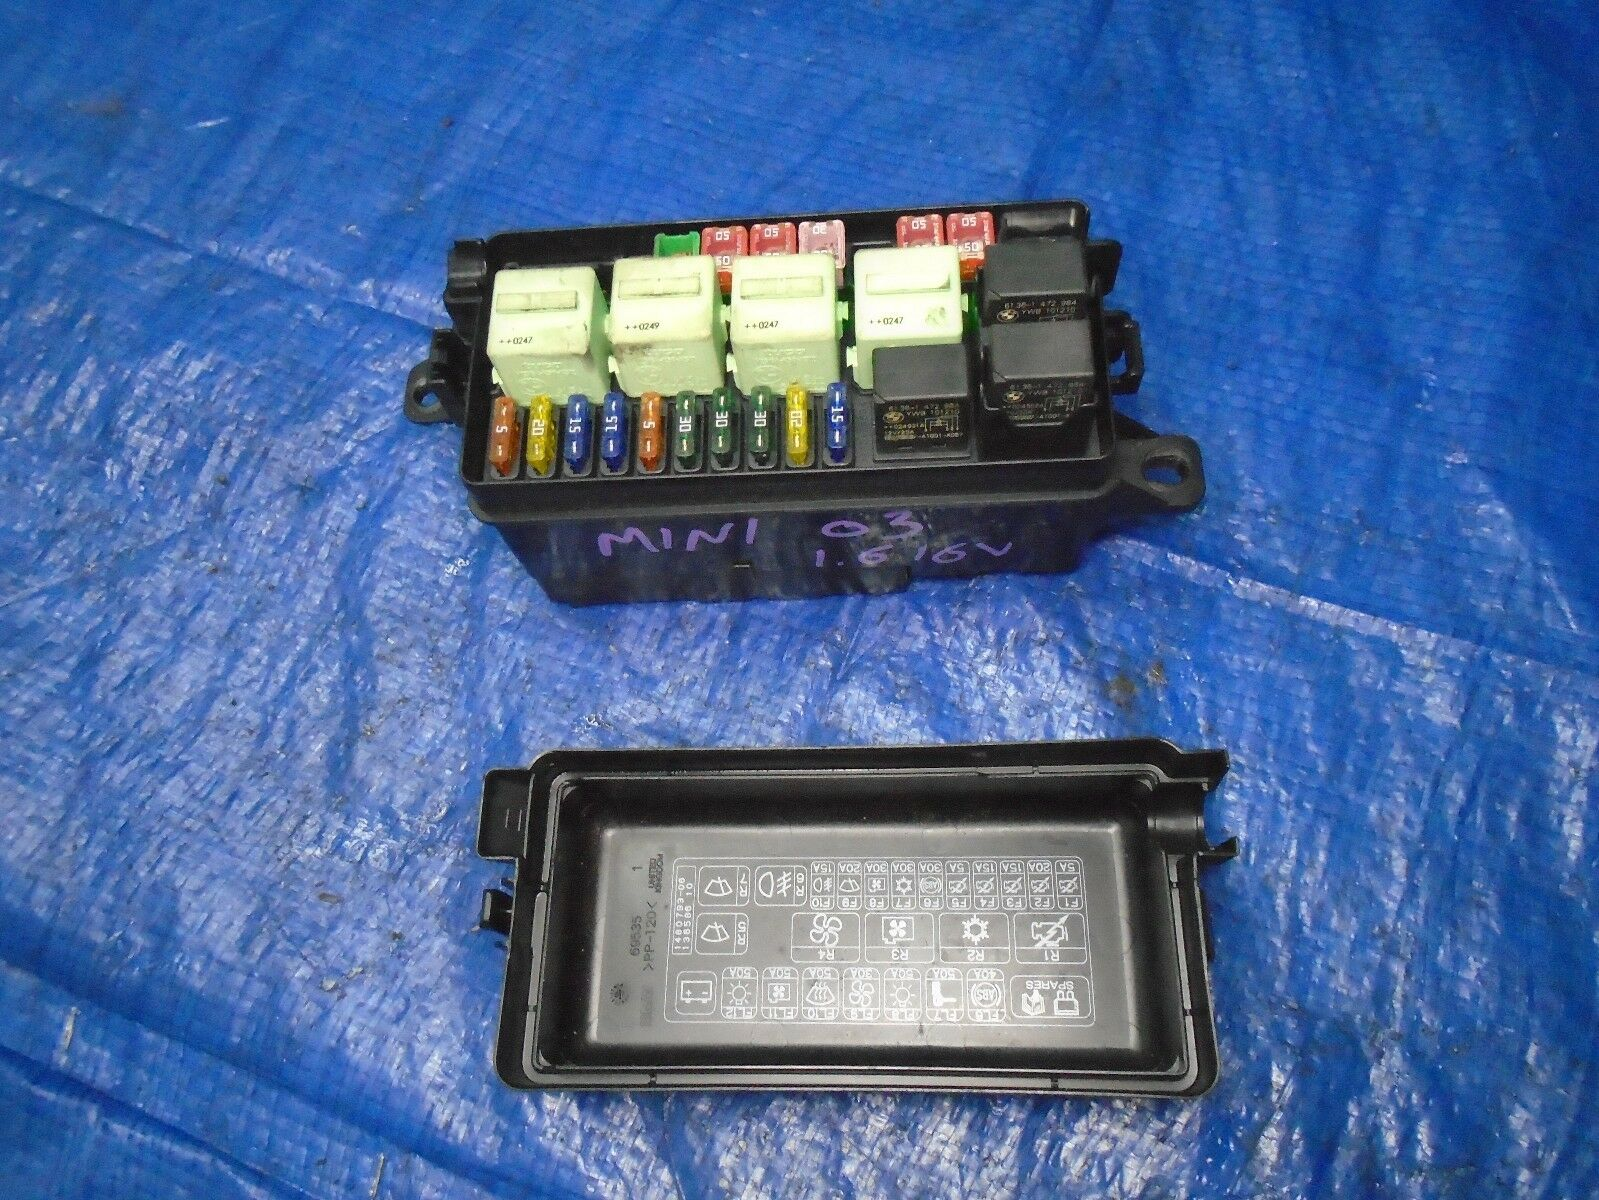 2005 Mini Cooper Fuse Box Wiring Library Bmw R50 1 6 16v Under Bonnet Engine Bay 2001 To